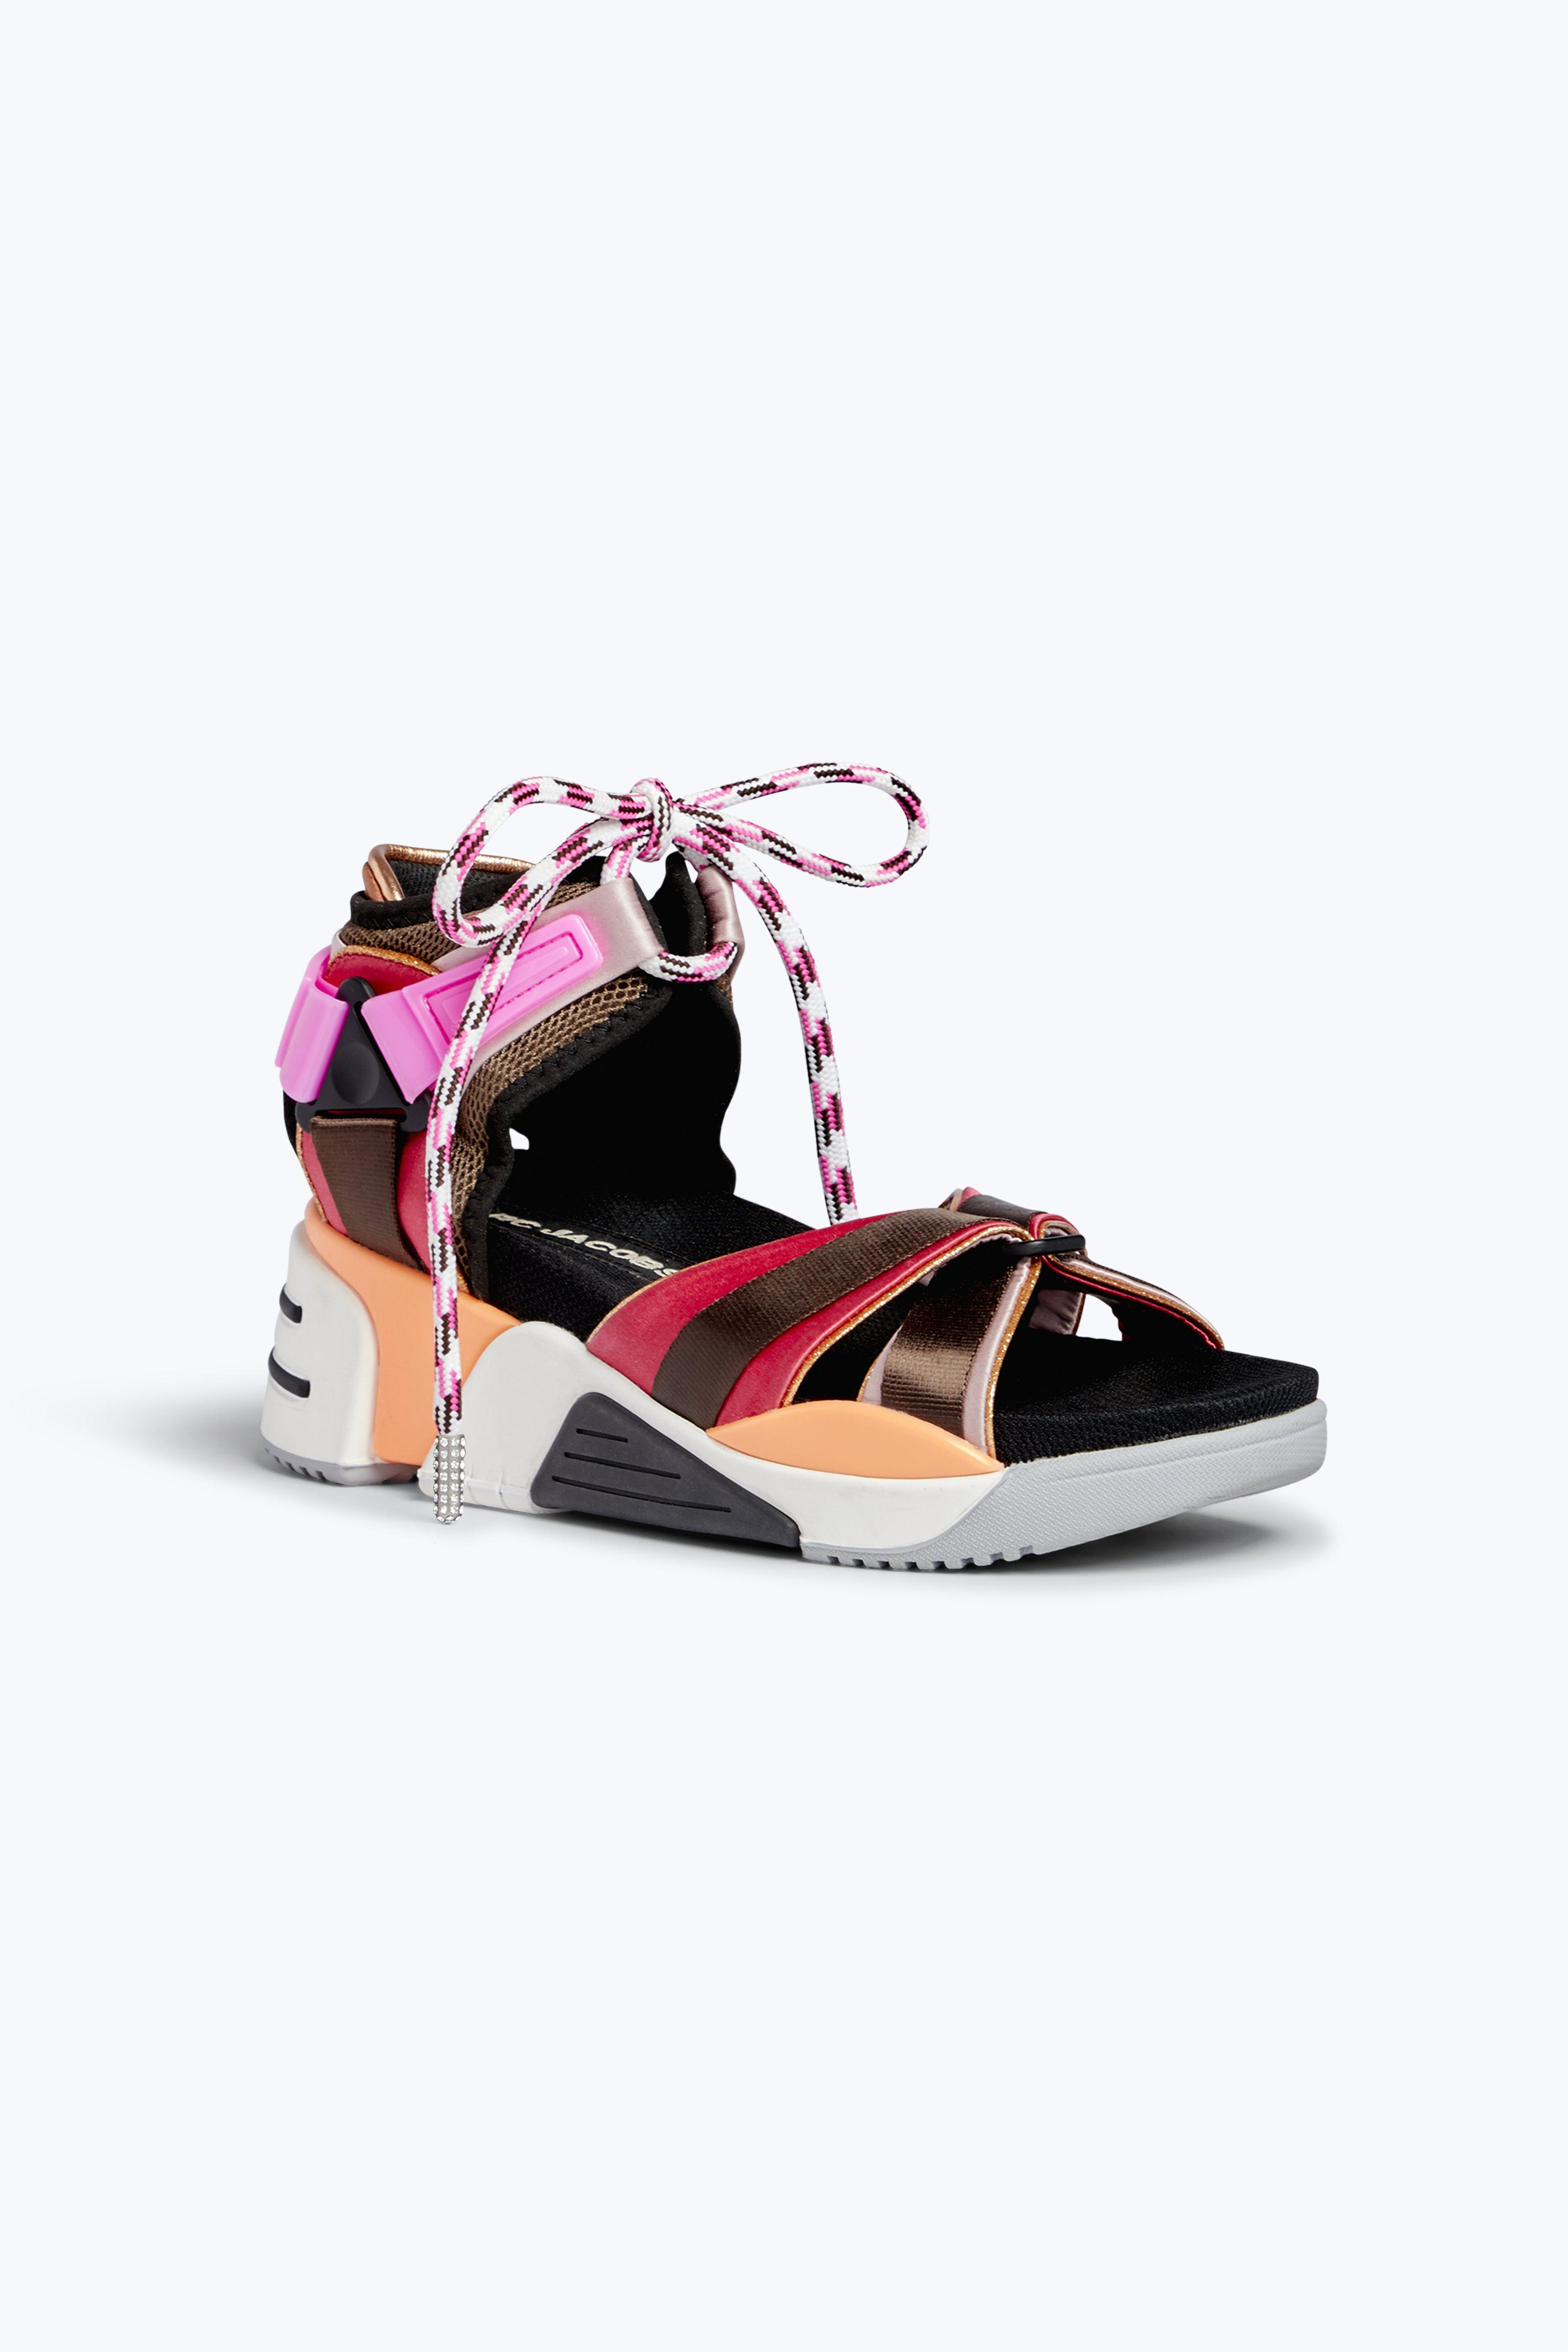 ce172333ced73 Marc Jacobs Women S Somewhere Satin Platform Wedge Sport Sandals In 953  Rasberr